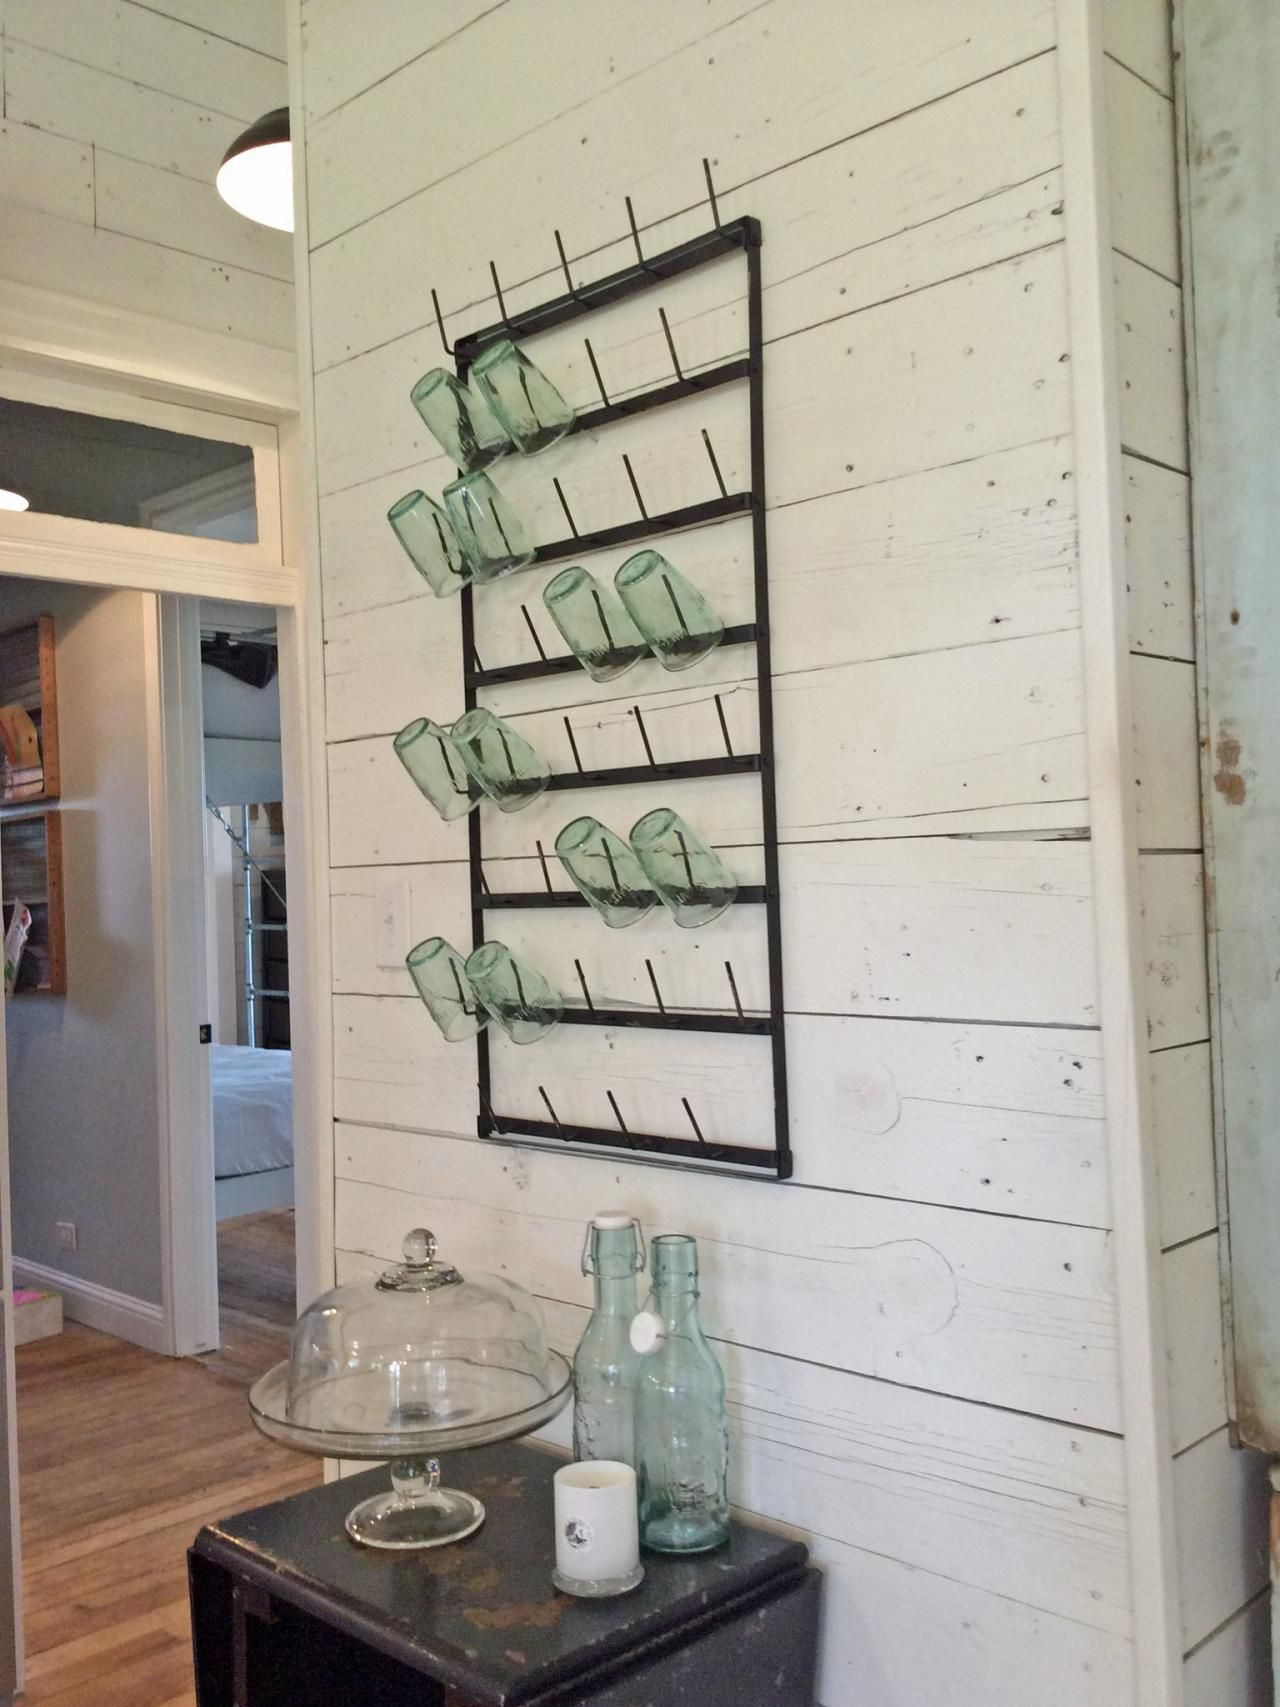 Fixer upper kitchen decor ideas - Decorating With Shiplap Ideas From Hgtv S Fixer Upper